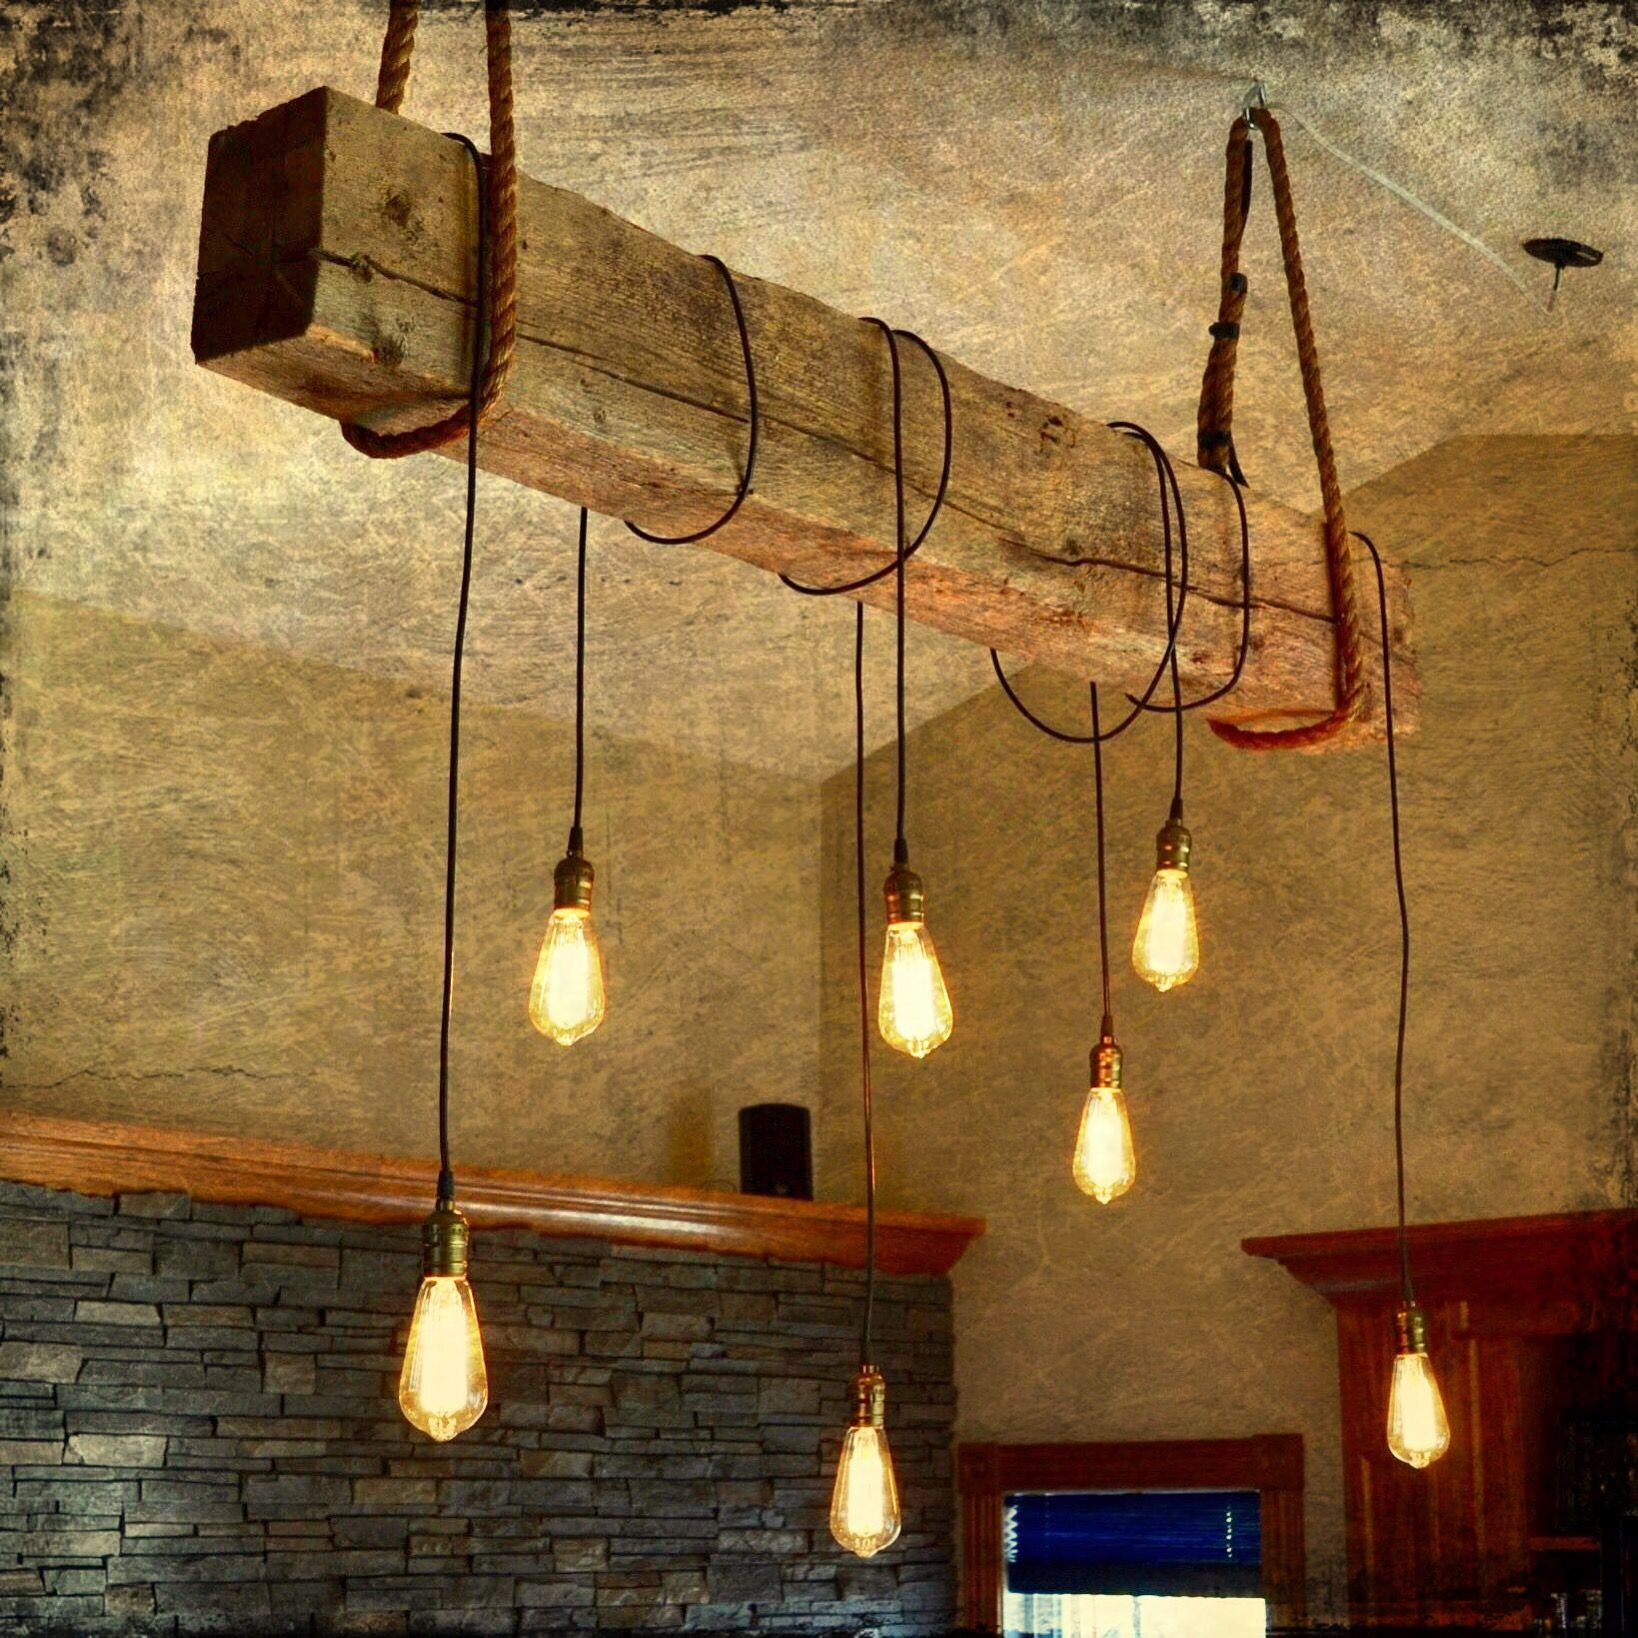 1930s Structural Beam Edison Bulb Light Fixture Project Rustic